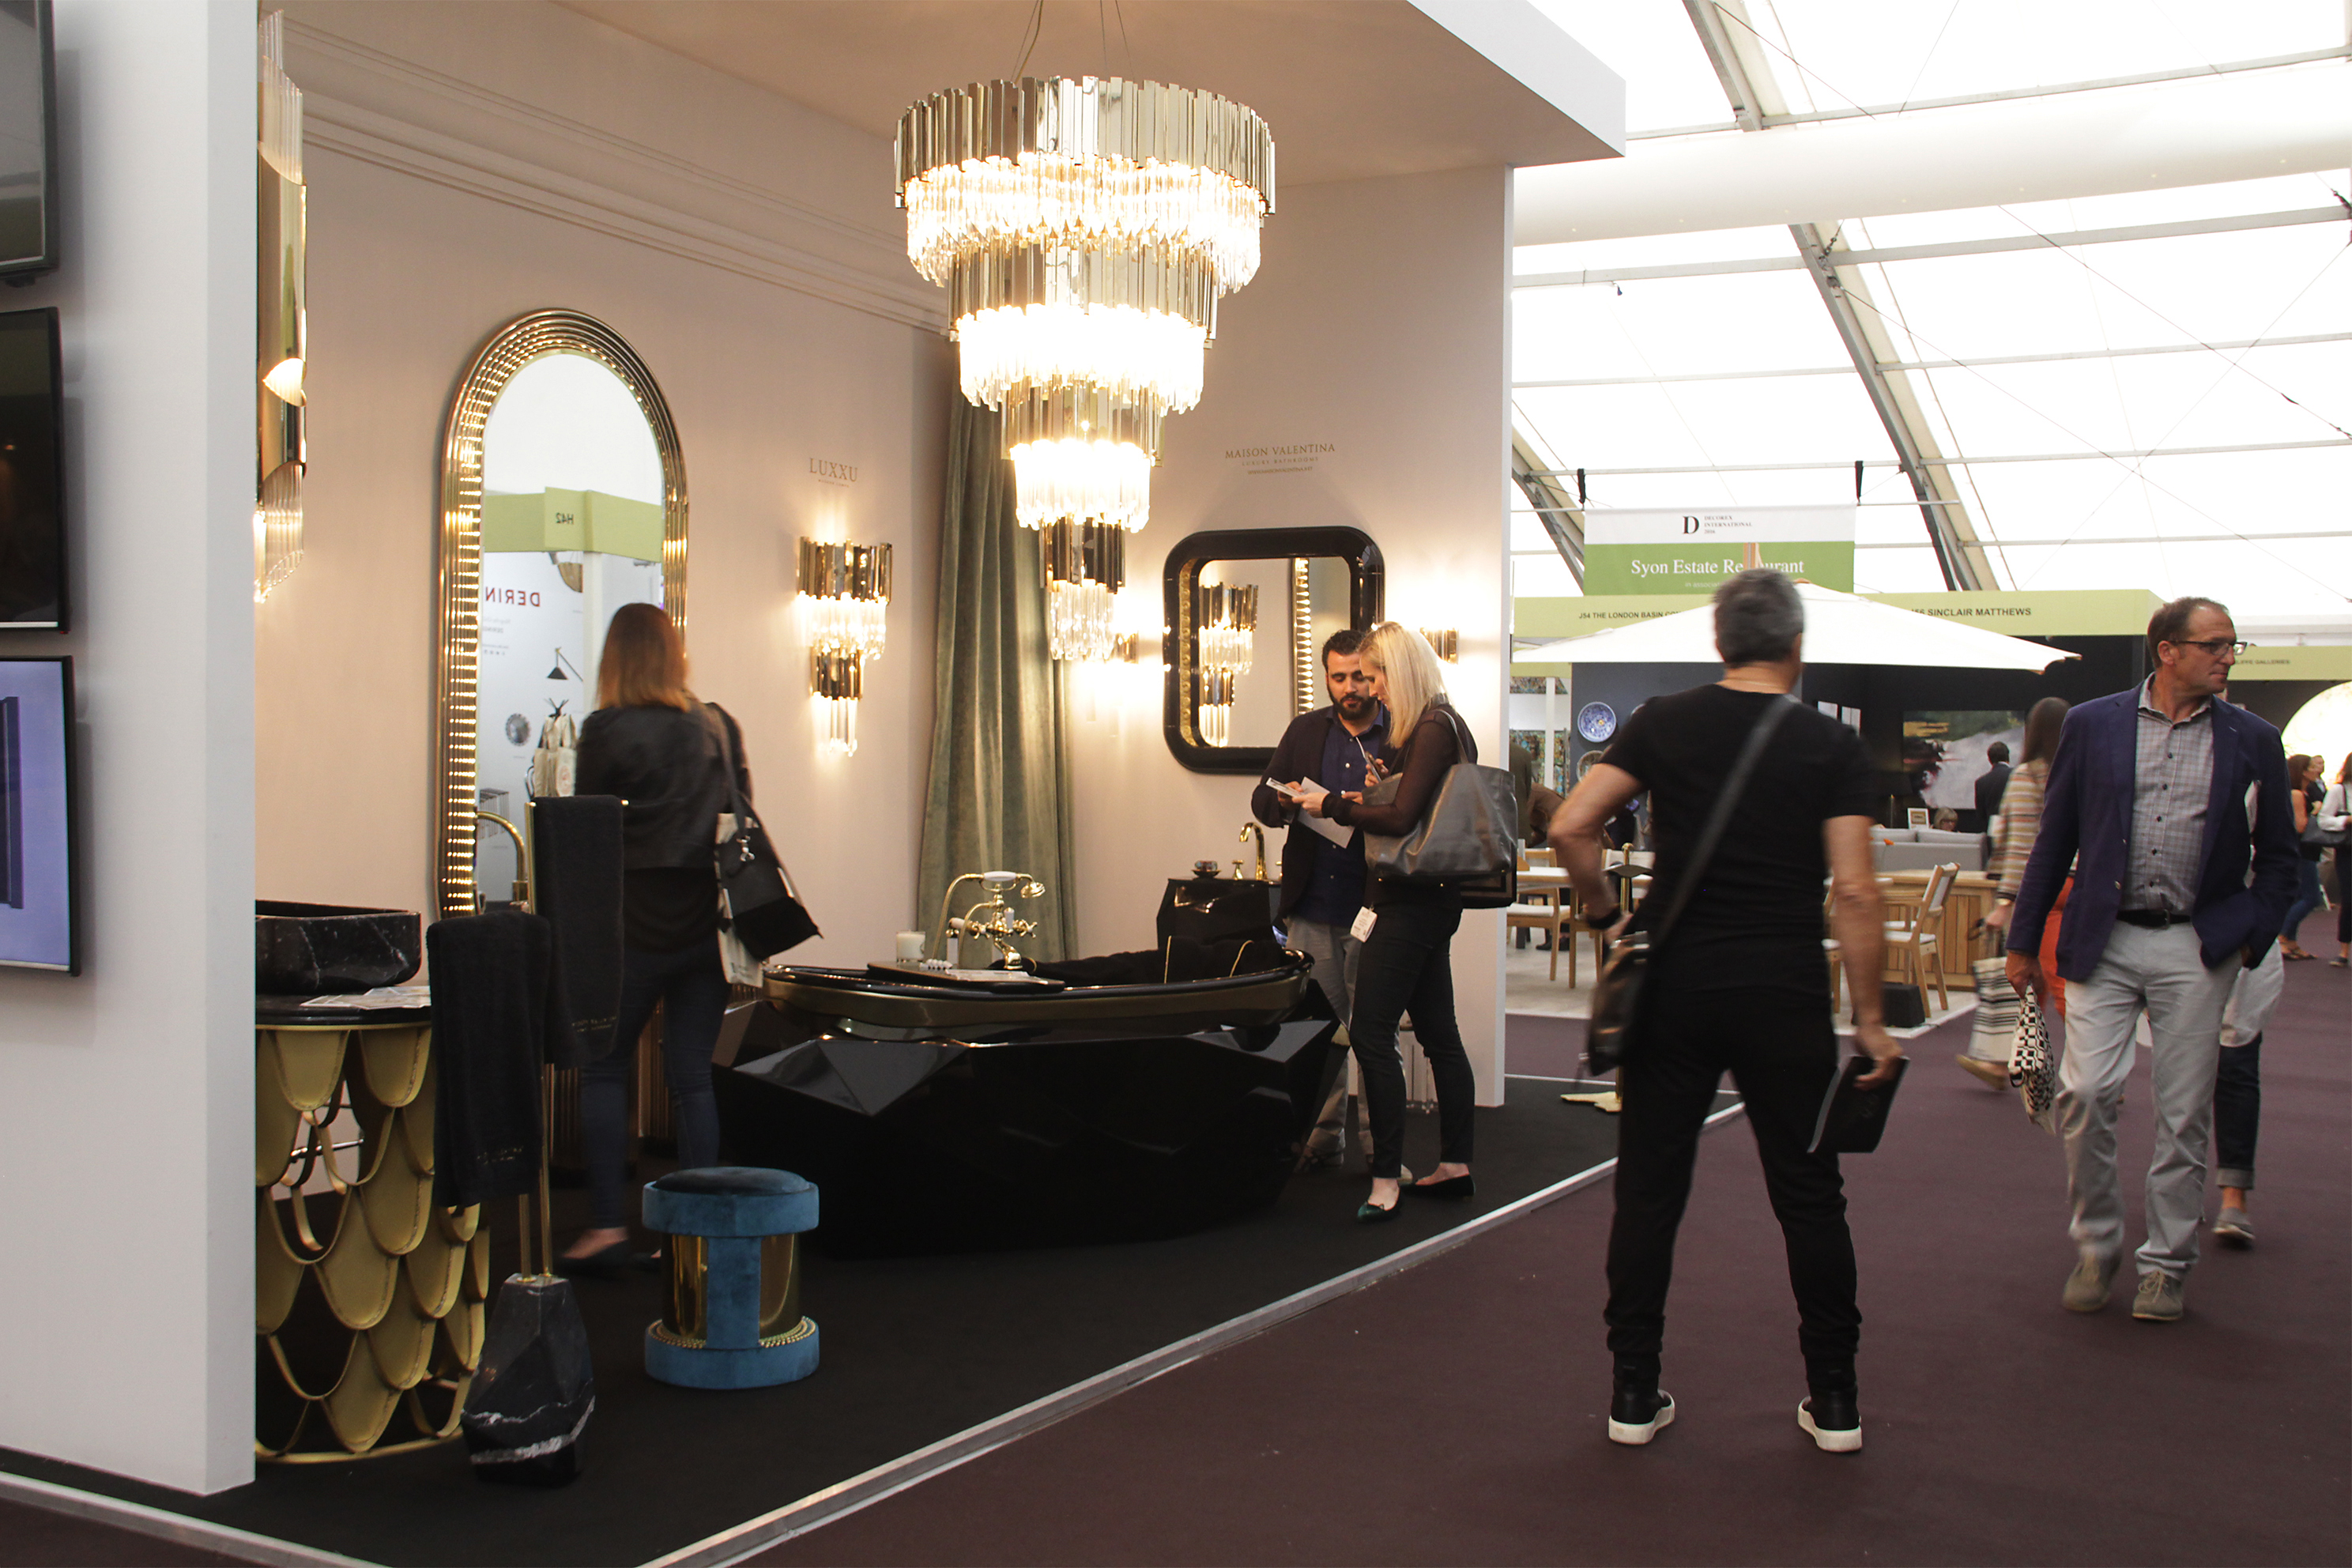 Decorex 2016 highlights 2 decorex 2016 Decorex 2016 in review: the highlights of London's trade show Decorex 2016 highlights 2